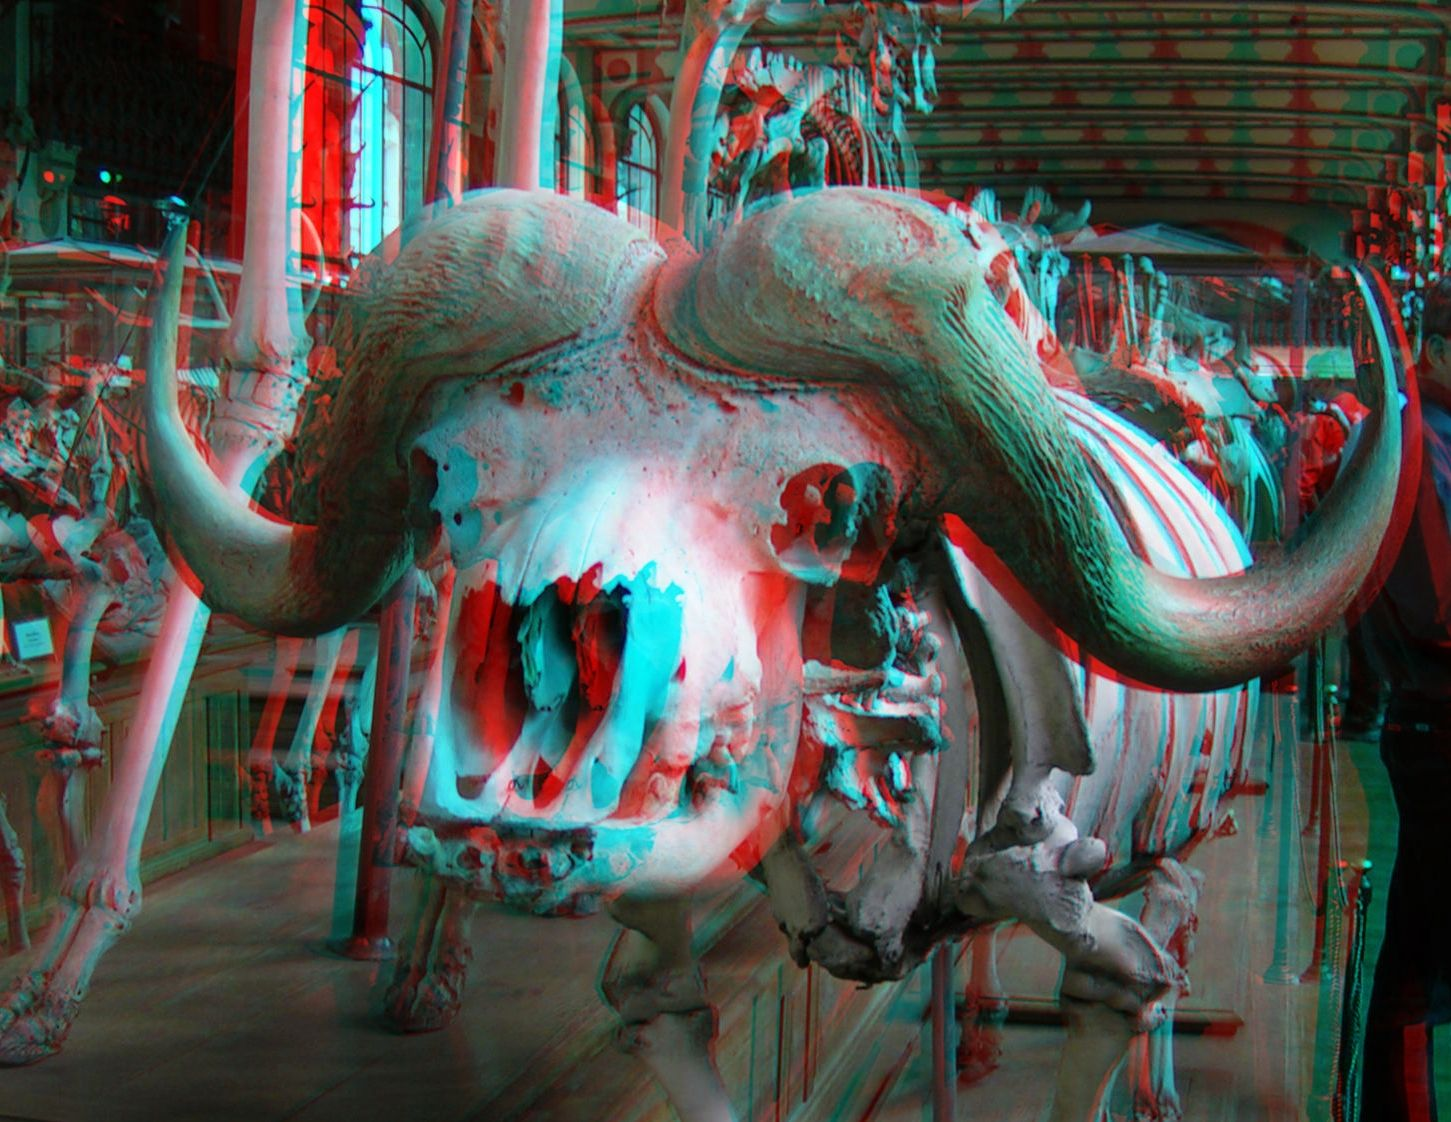 anaglyph photos - Google Search | COMIN AT YA! / (3D ...